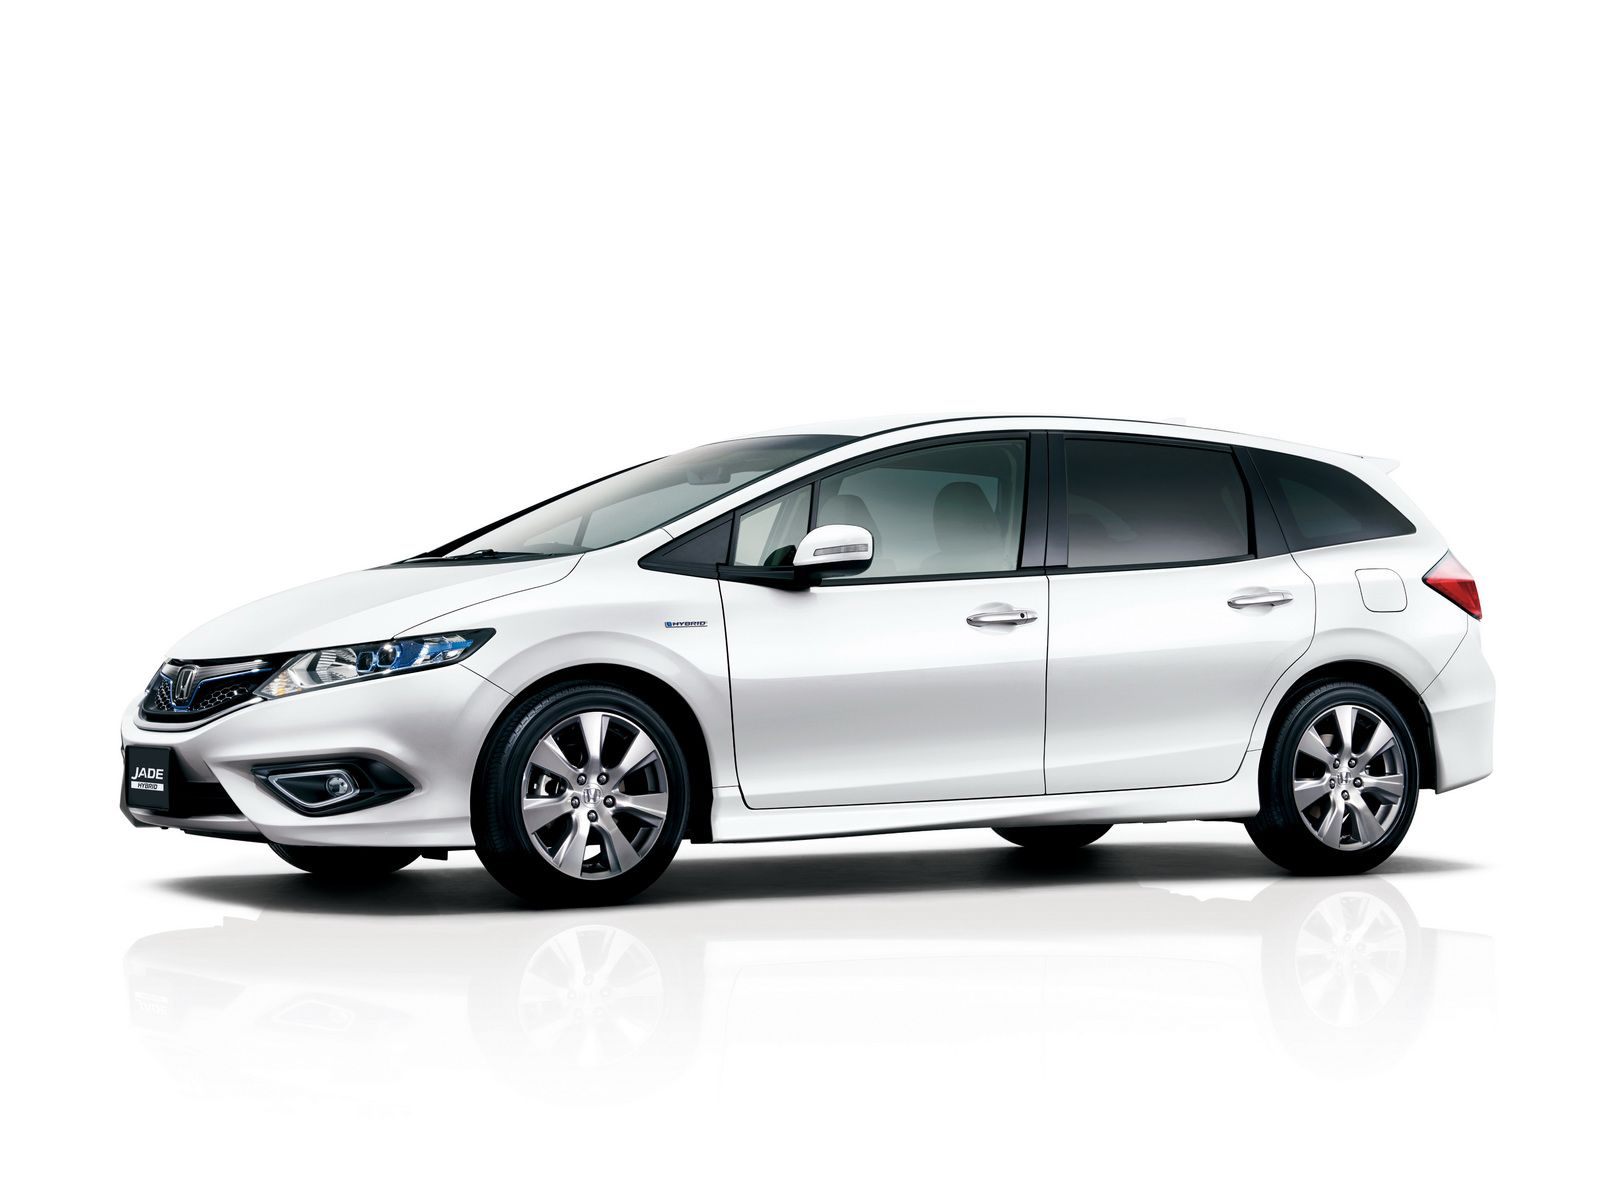 Honda has announced the introduction of the jade hybrid mpv on the japanese market